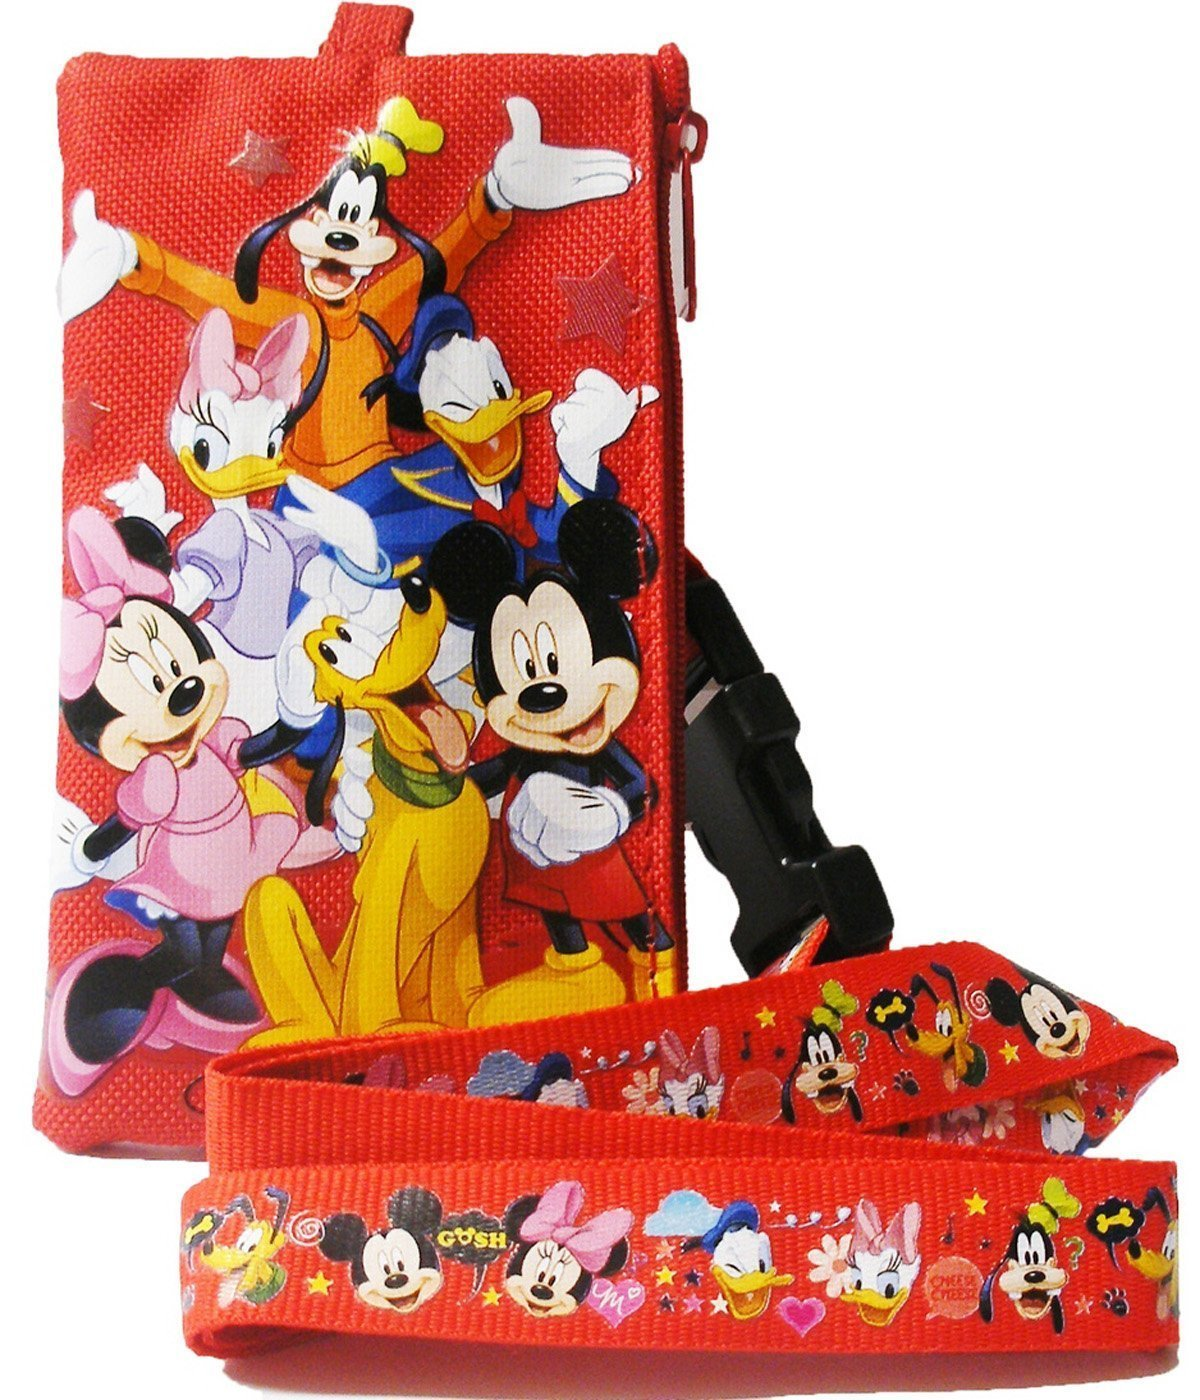 Disney Mickey Mouse & Friends Long Red Lanyard w/ Zippered Pouch